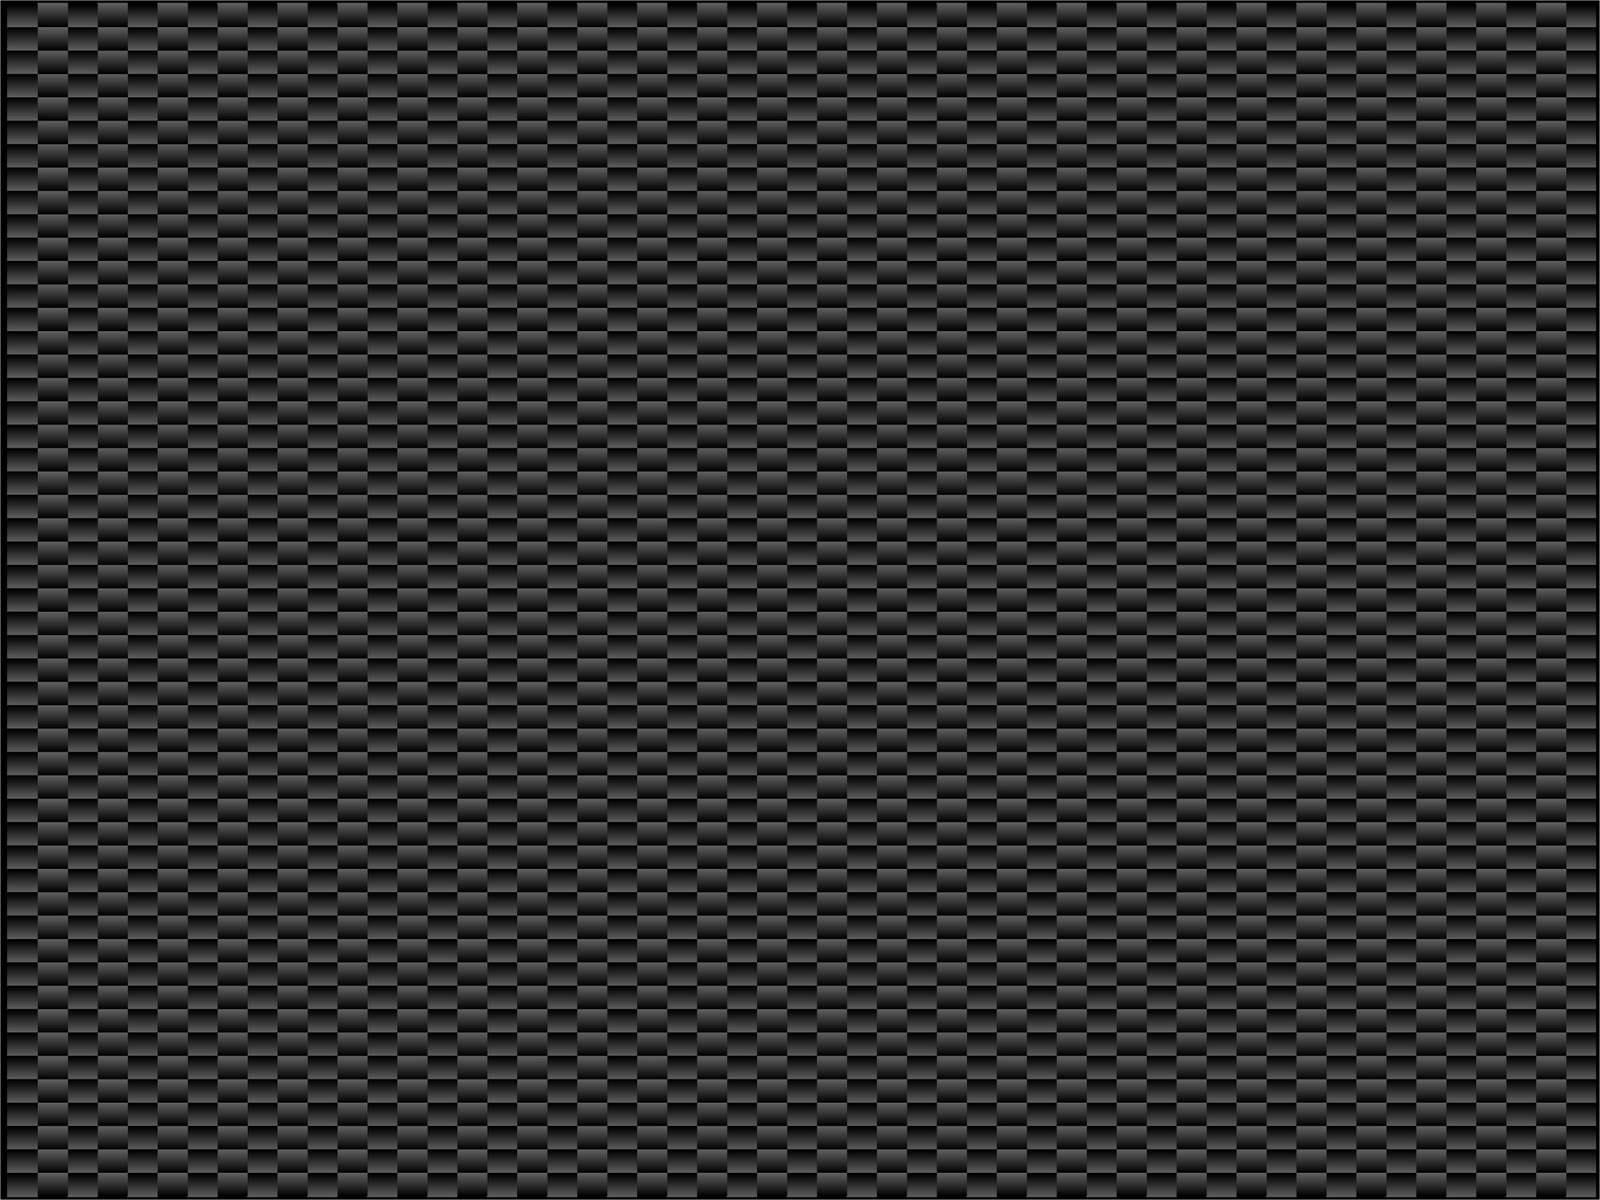 Carbon fiber wallpaper windows 7 wallpapersafari - Real carbon fiber wallpaper ...